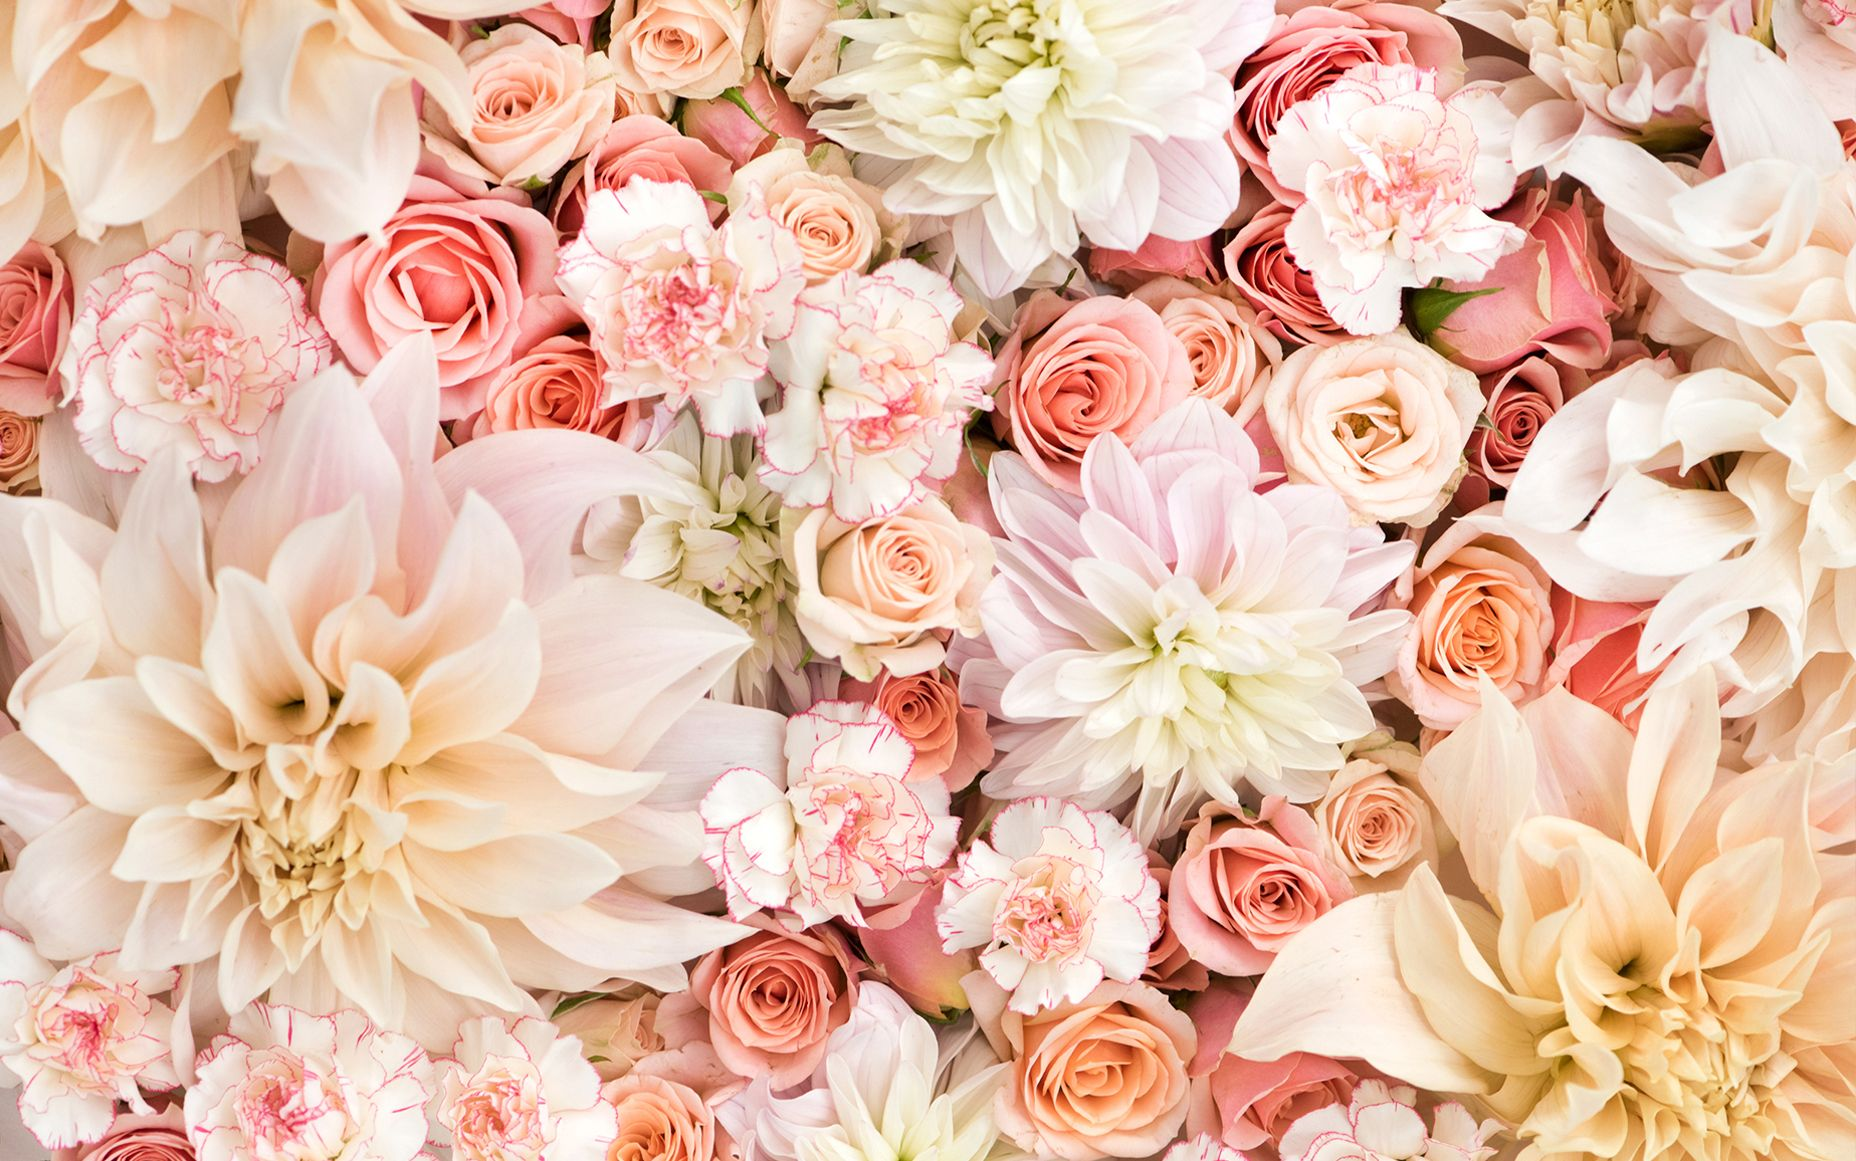 Pink Peach Coral Blush Cream Floral Flowers Blooms Desktop